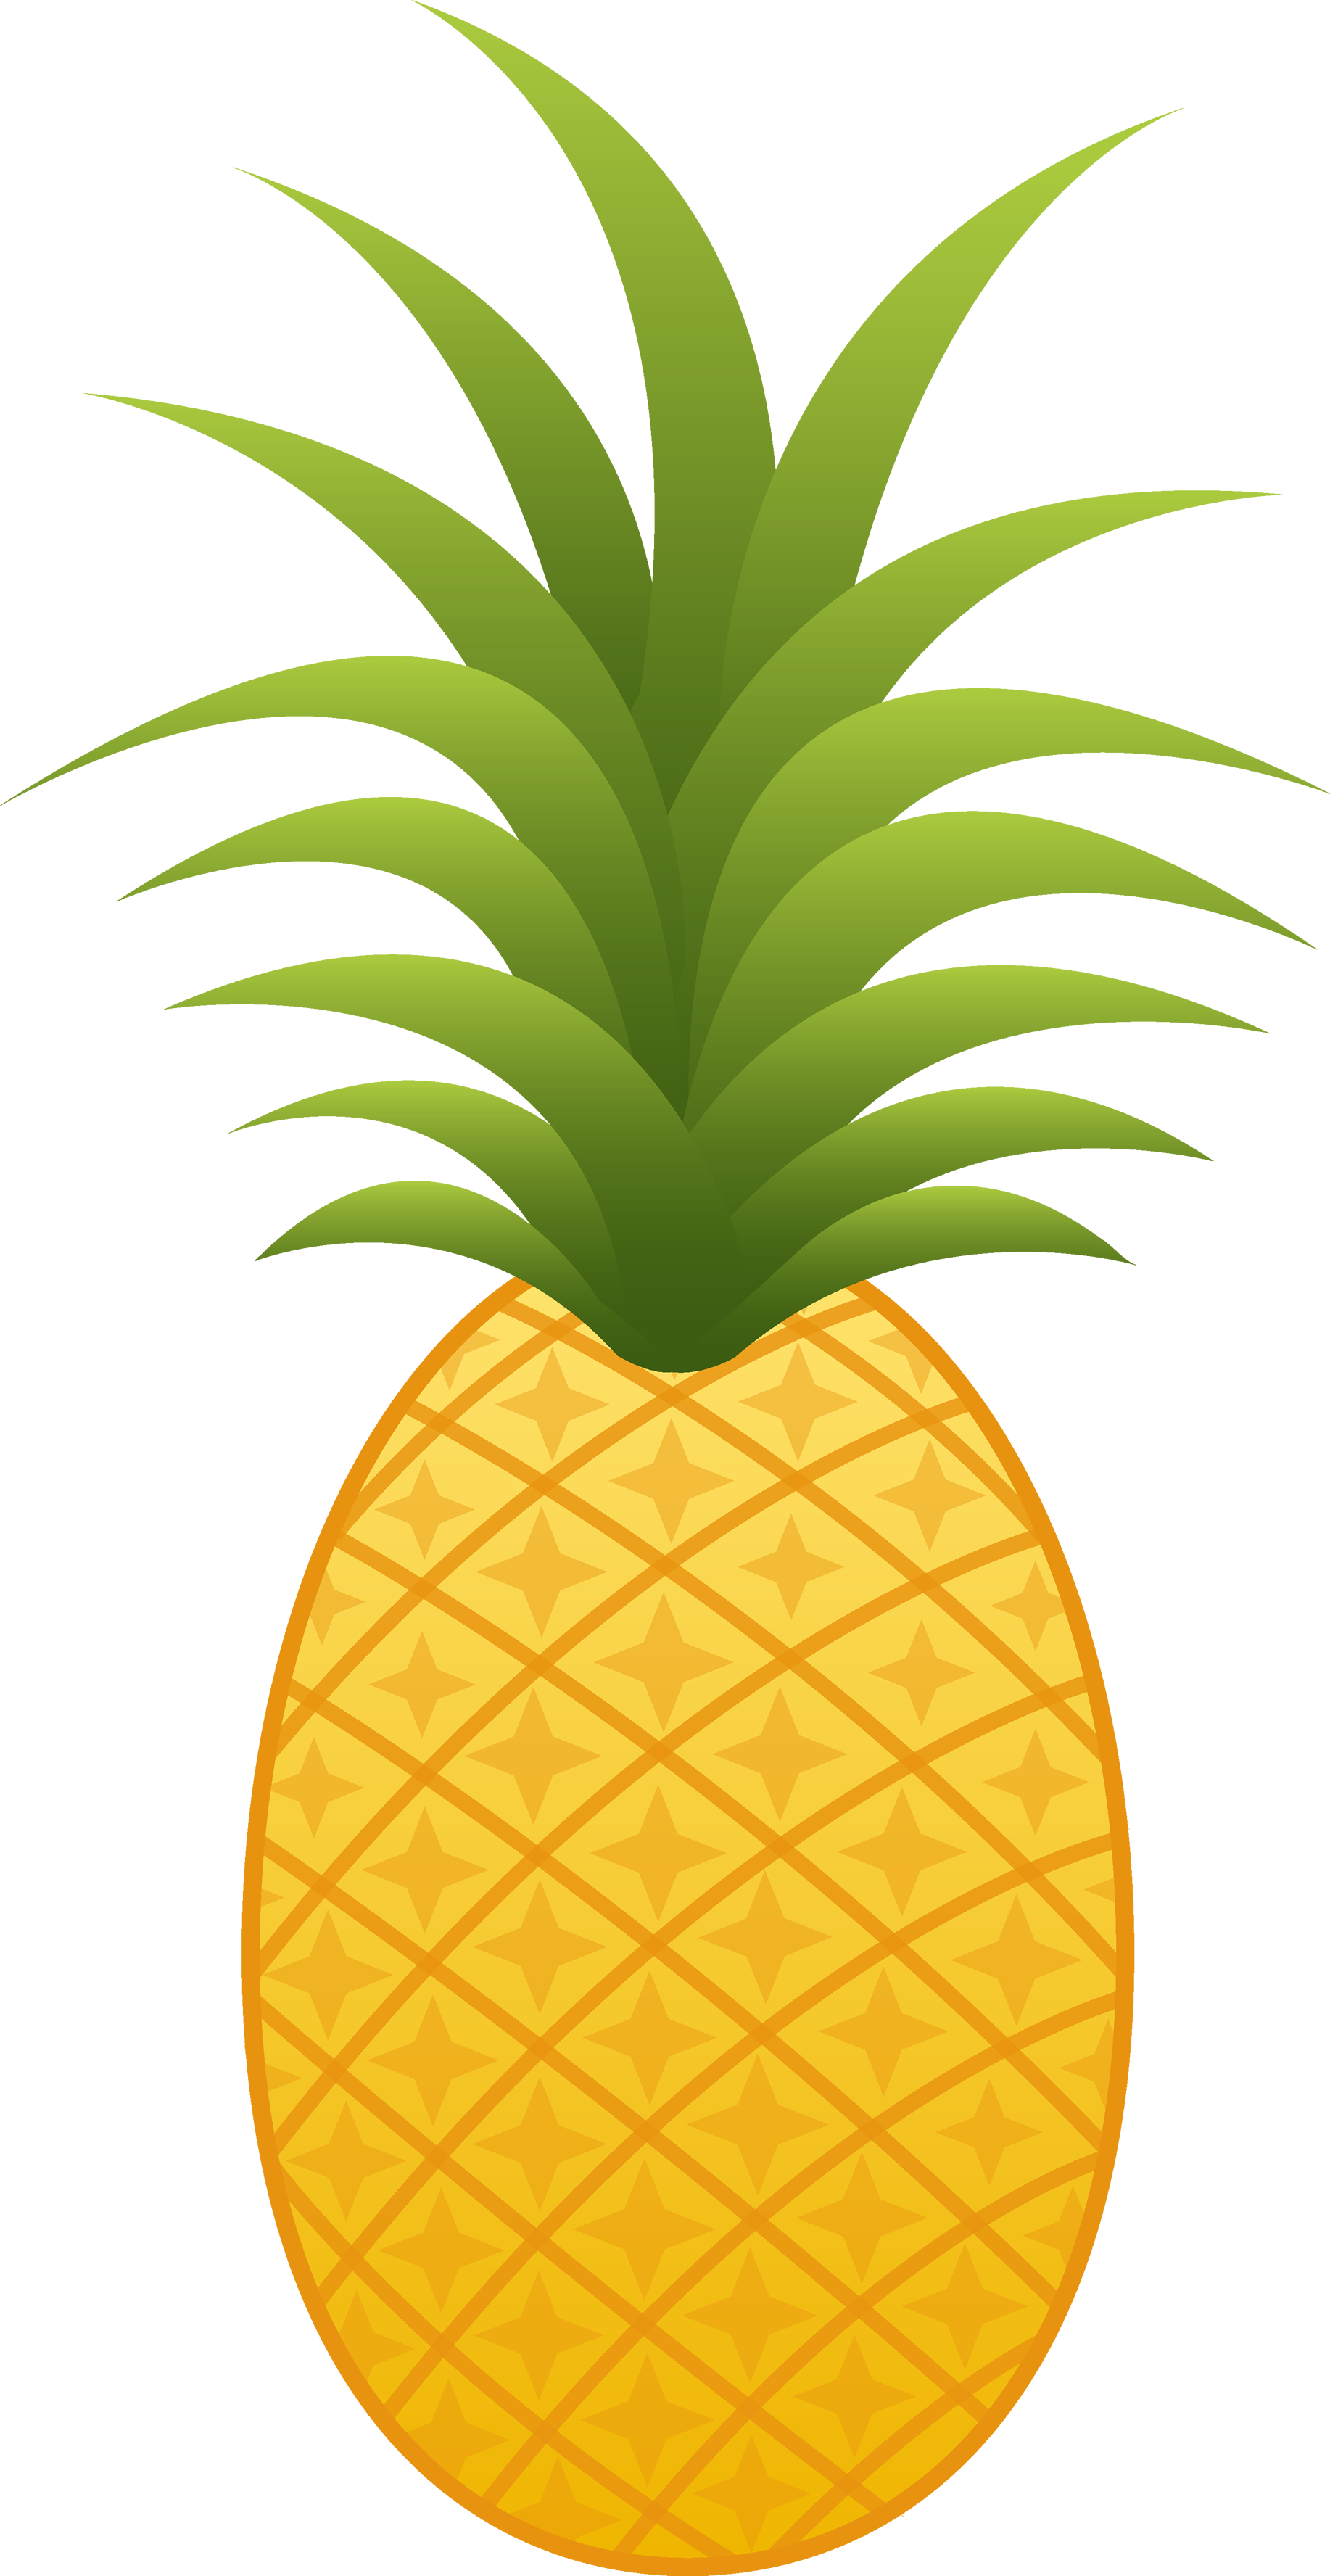 Twenty one isolated stock. Pineapple clipart man